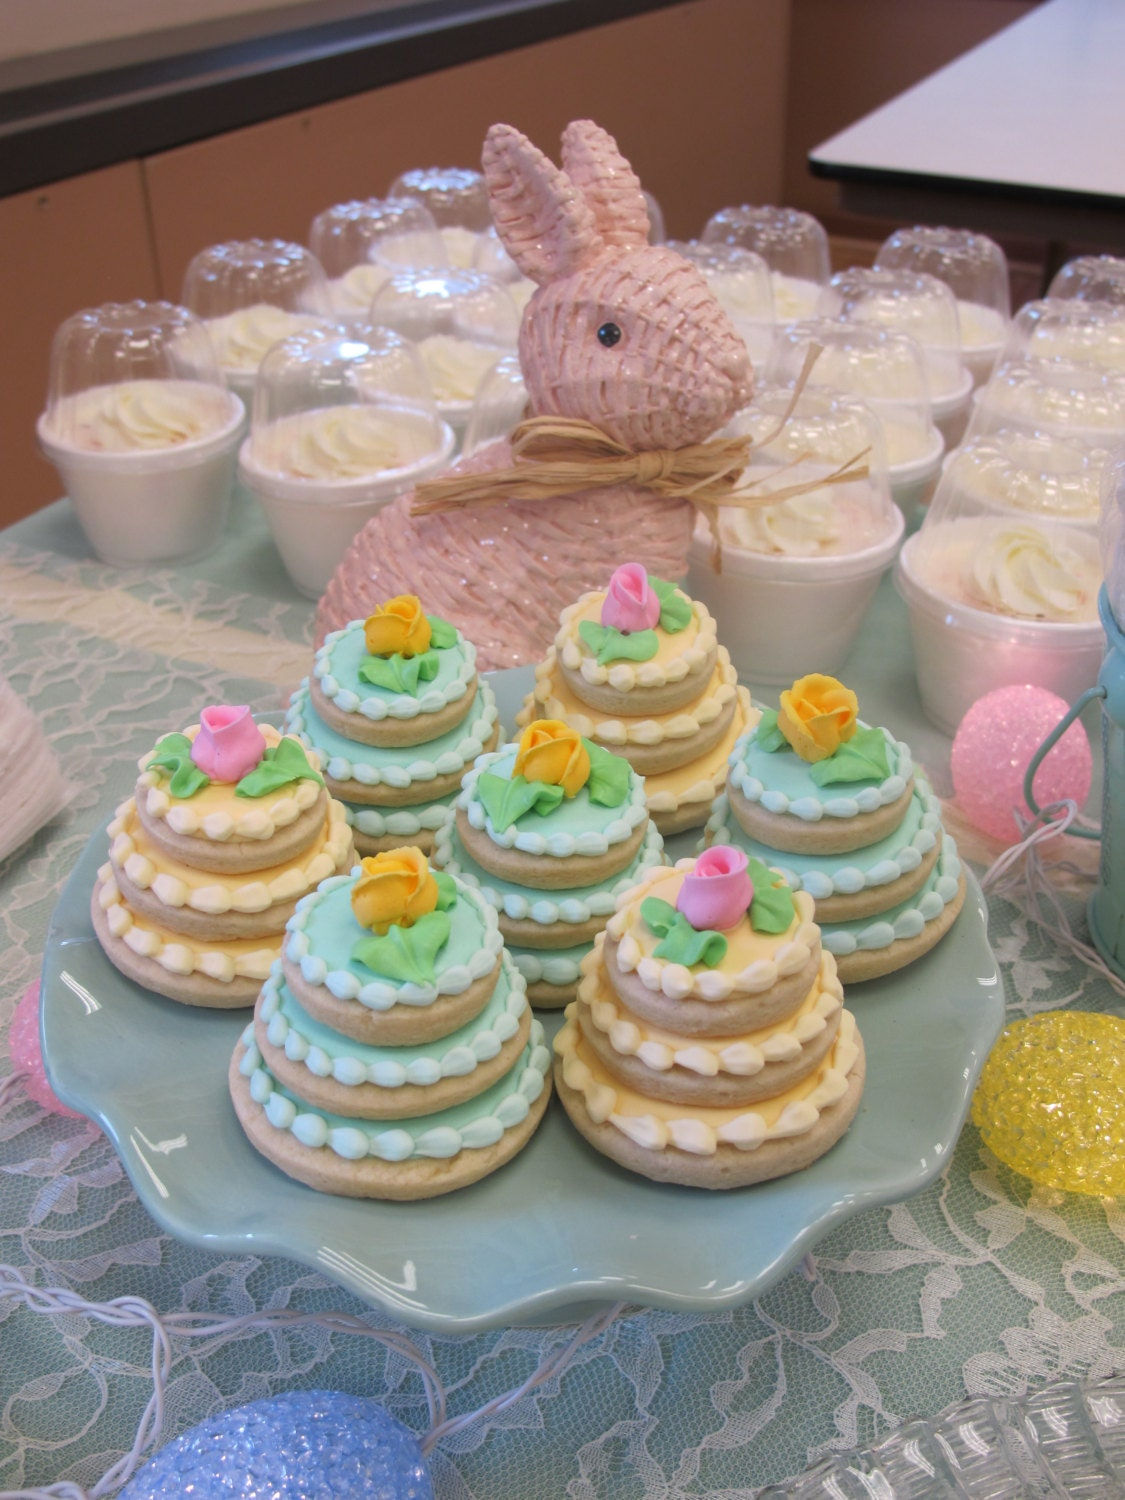 decorated wedding cake cookies wedding cake decorated sugar cookies mini wedding cake 13376